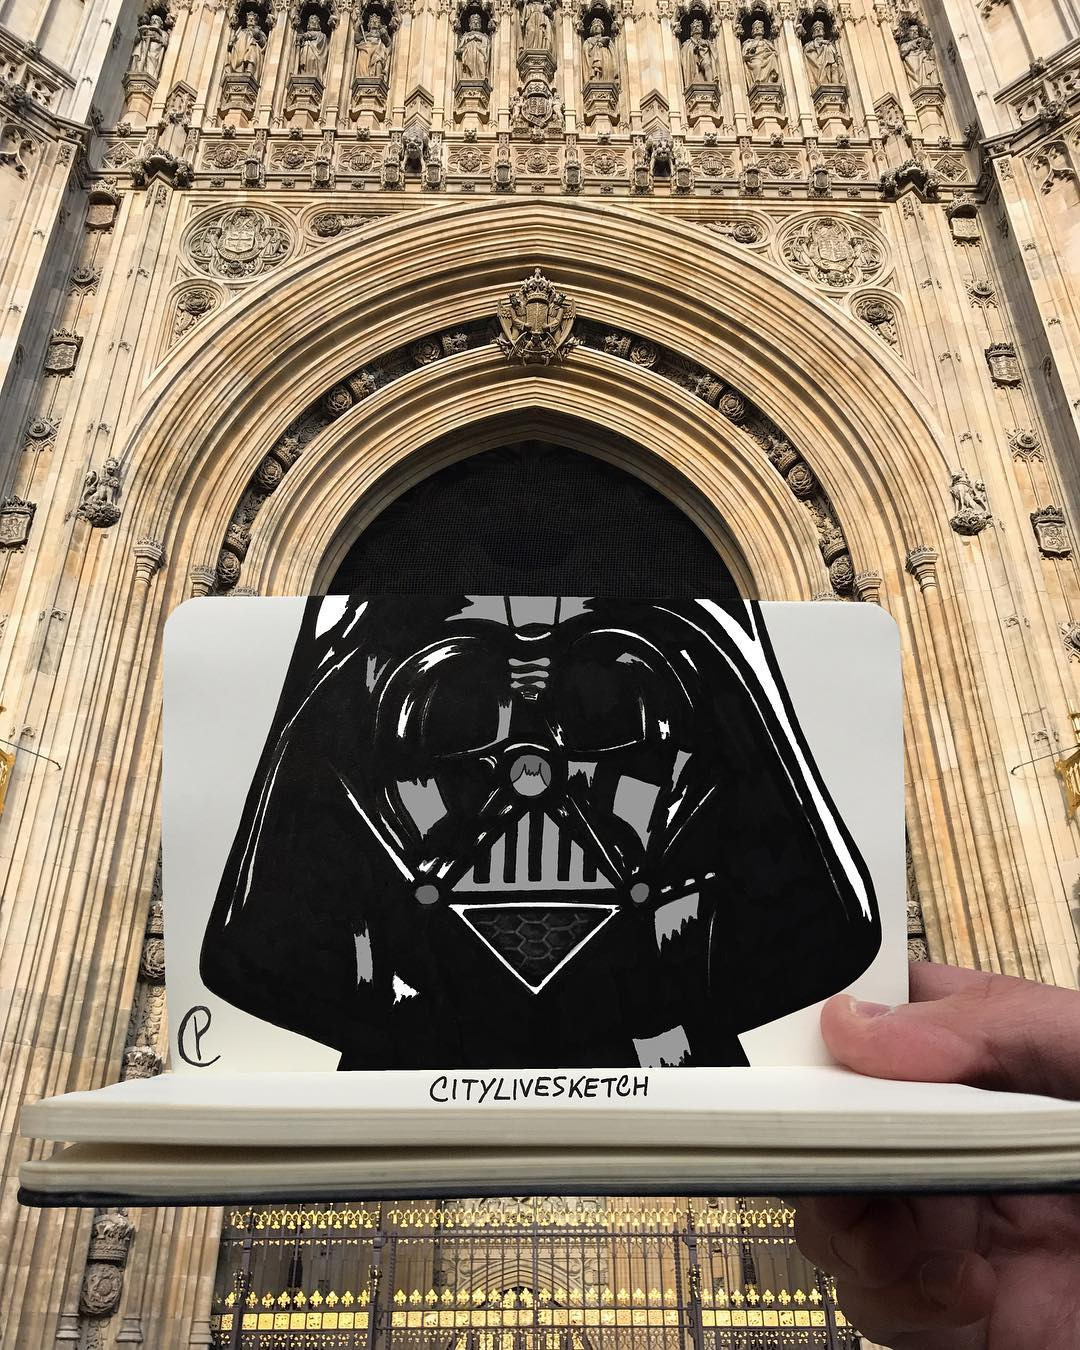 Artist merges photos of real-life structures with playful sketches 21